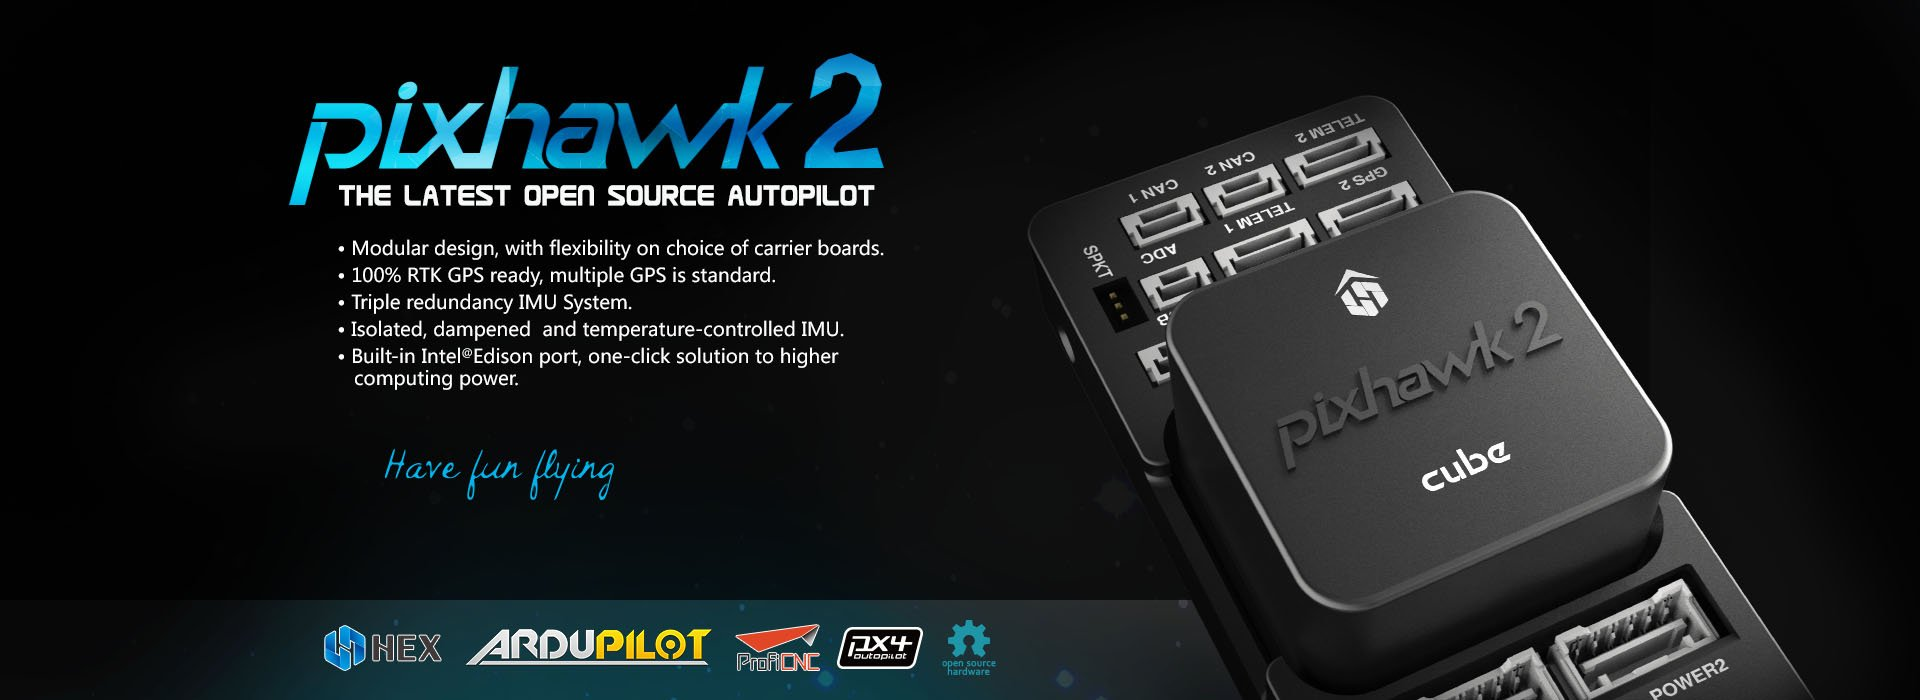 Pixhawk 2 1 set to fly off shelves - sUAS News - The